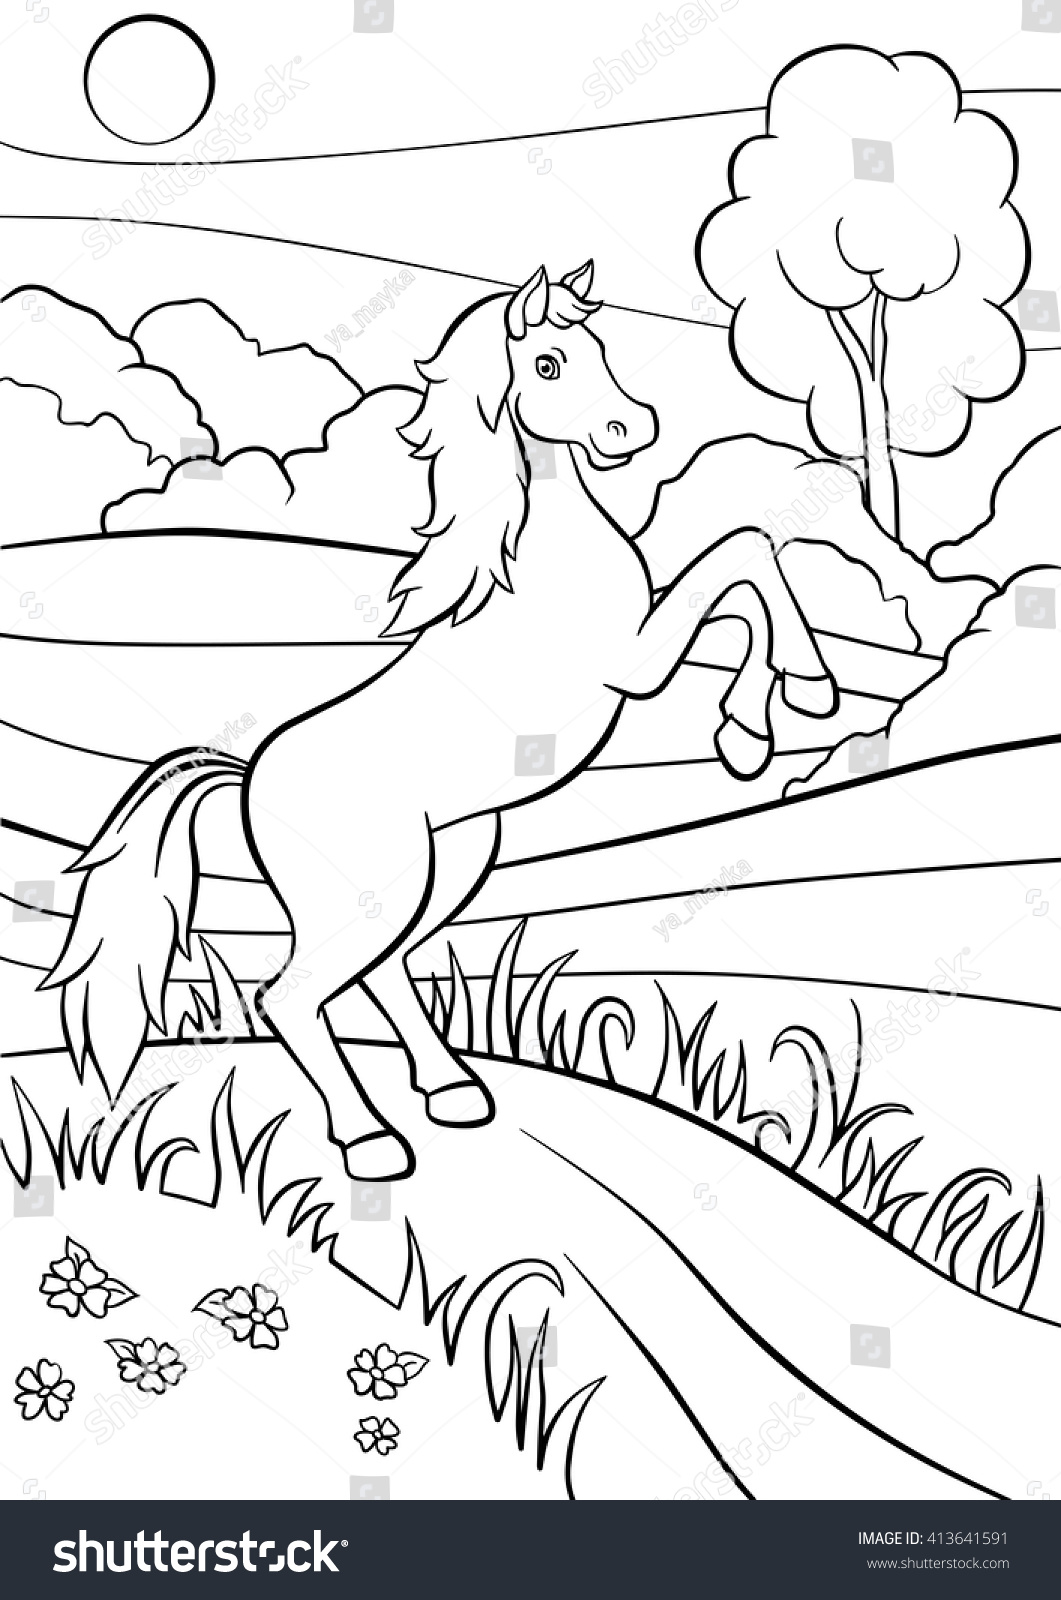 Coloring Pages Animals Cute Horse Jumps Stock Vector 413641591 ...